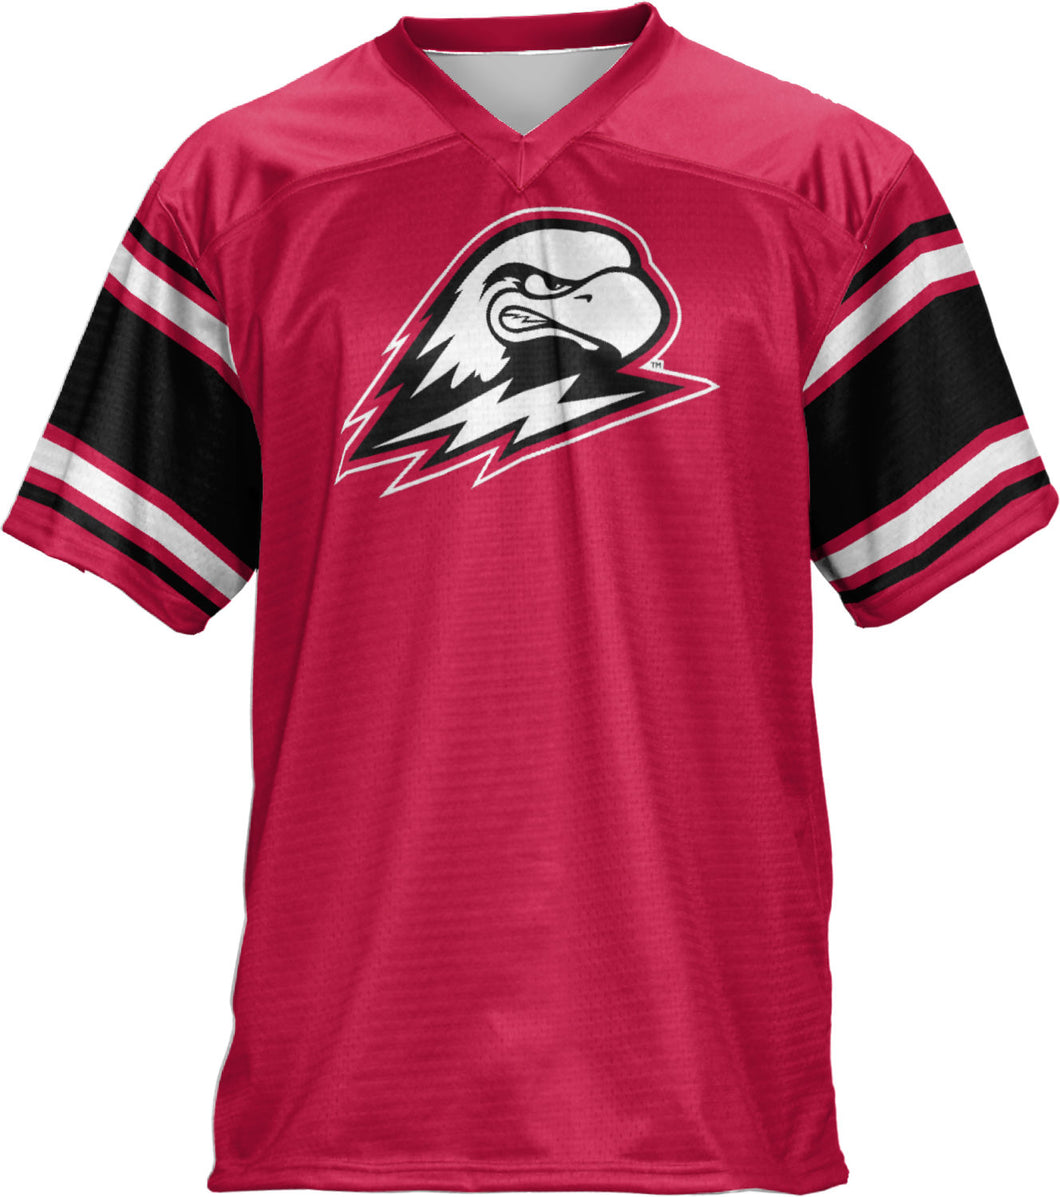 Southern Utah University: Boys' Football Fan Jersey - End Zone